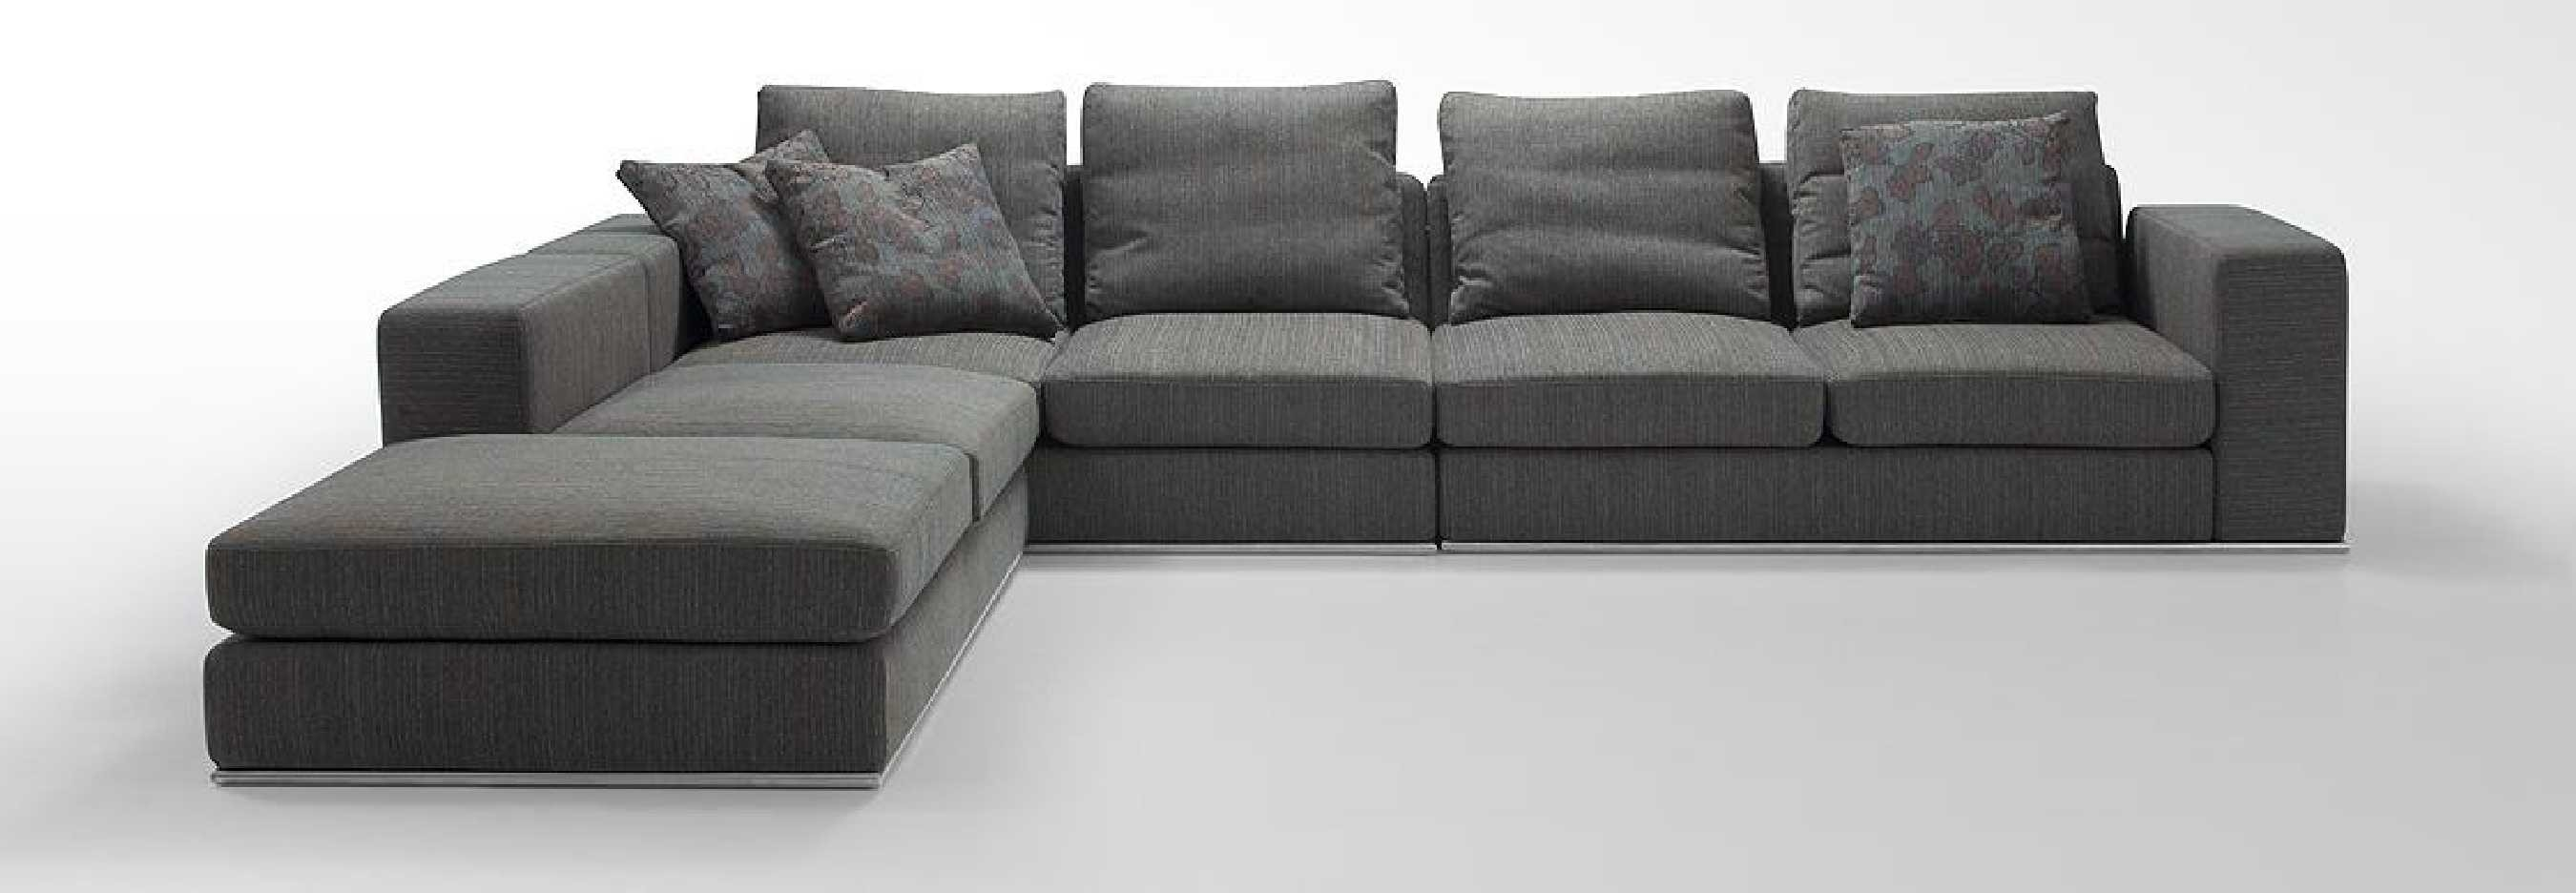 Furniture Leather Sectional Sofa Bed And L Shaped Sleeper Sofa With L Shaped Sofa Bed (Image 7 of 15)